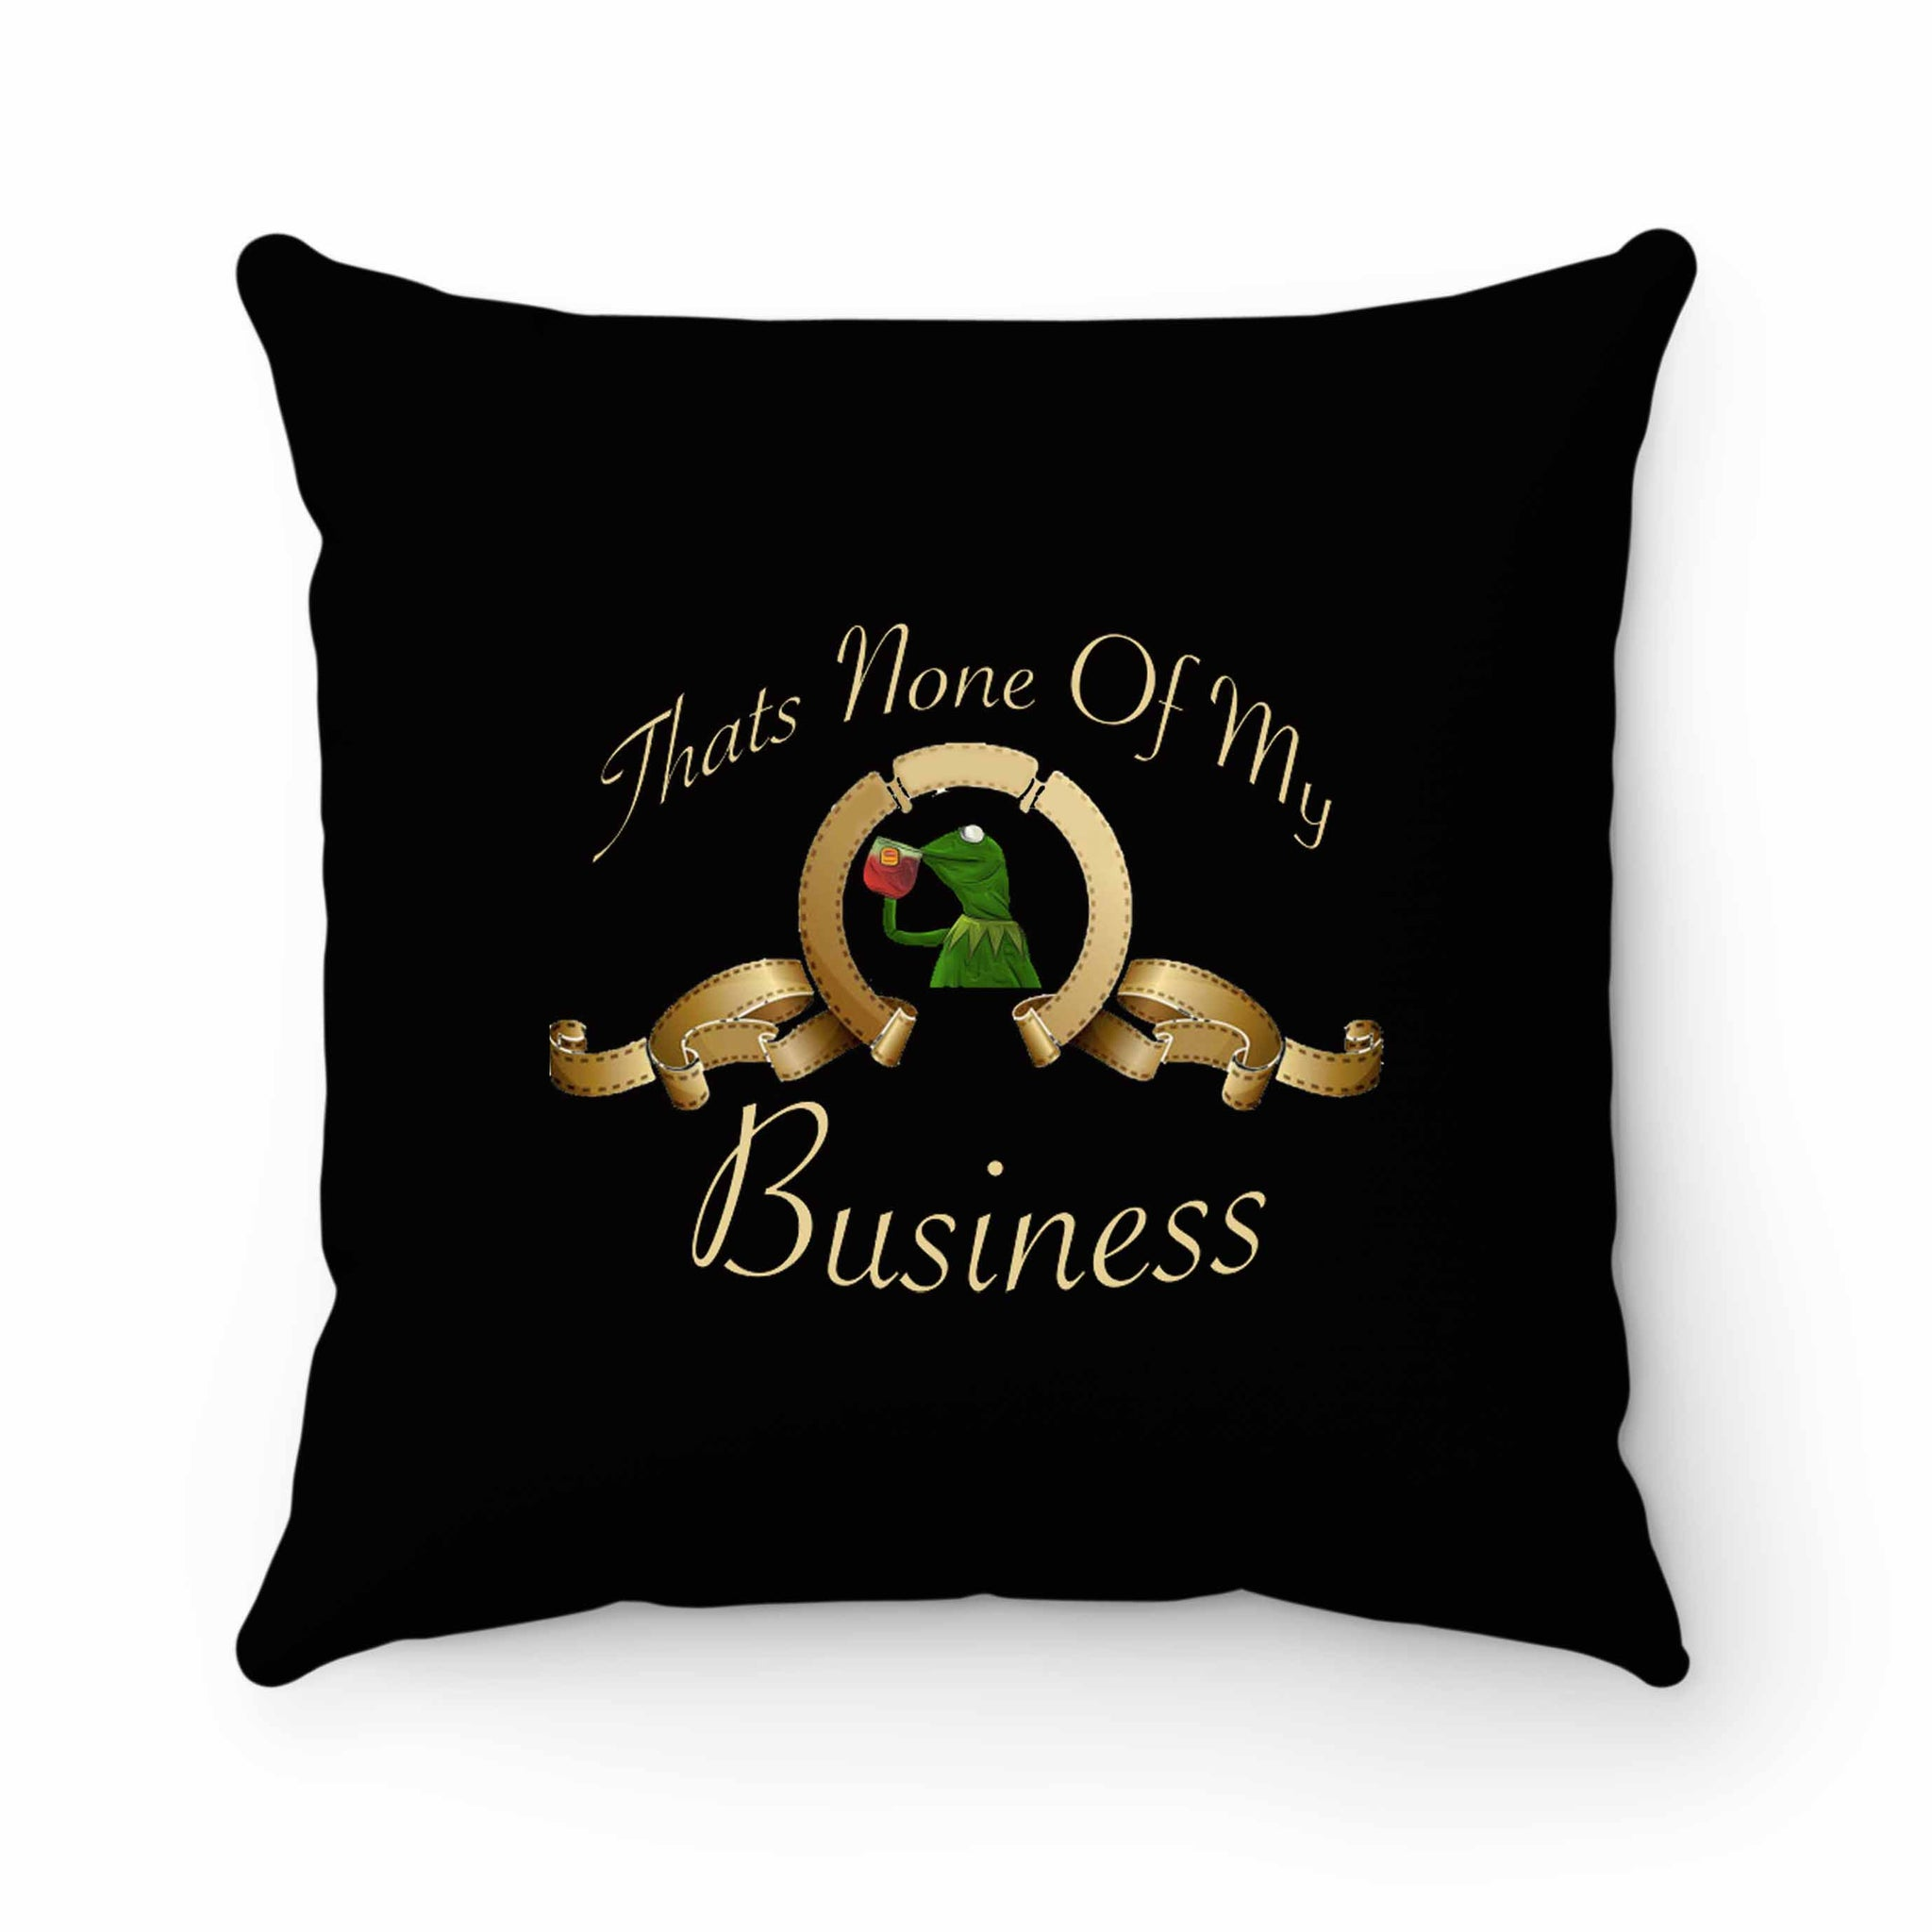 Thats None Of My Business Kermit Pillow Case Cover